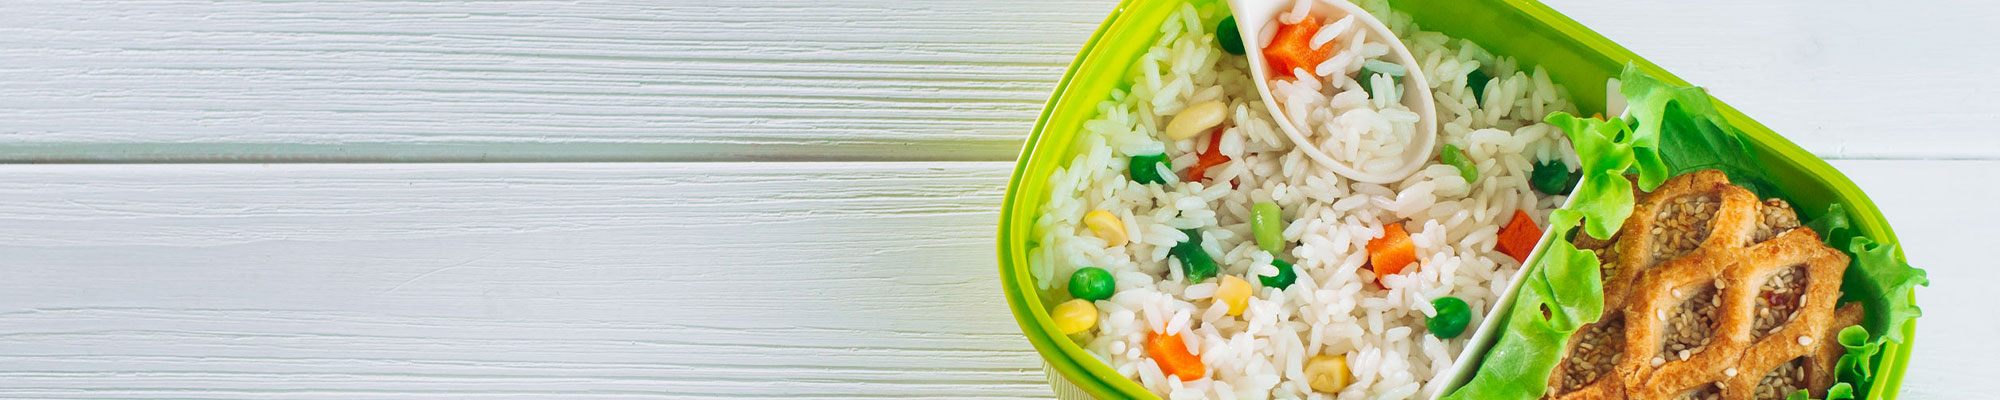 Banner Image of a school lunch with rice.